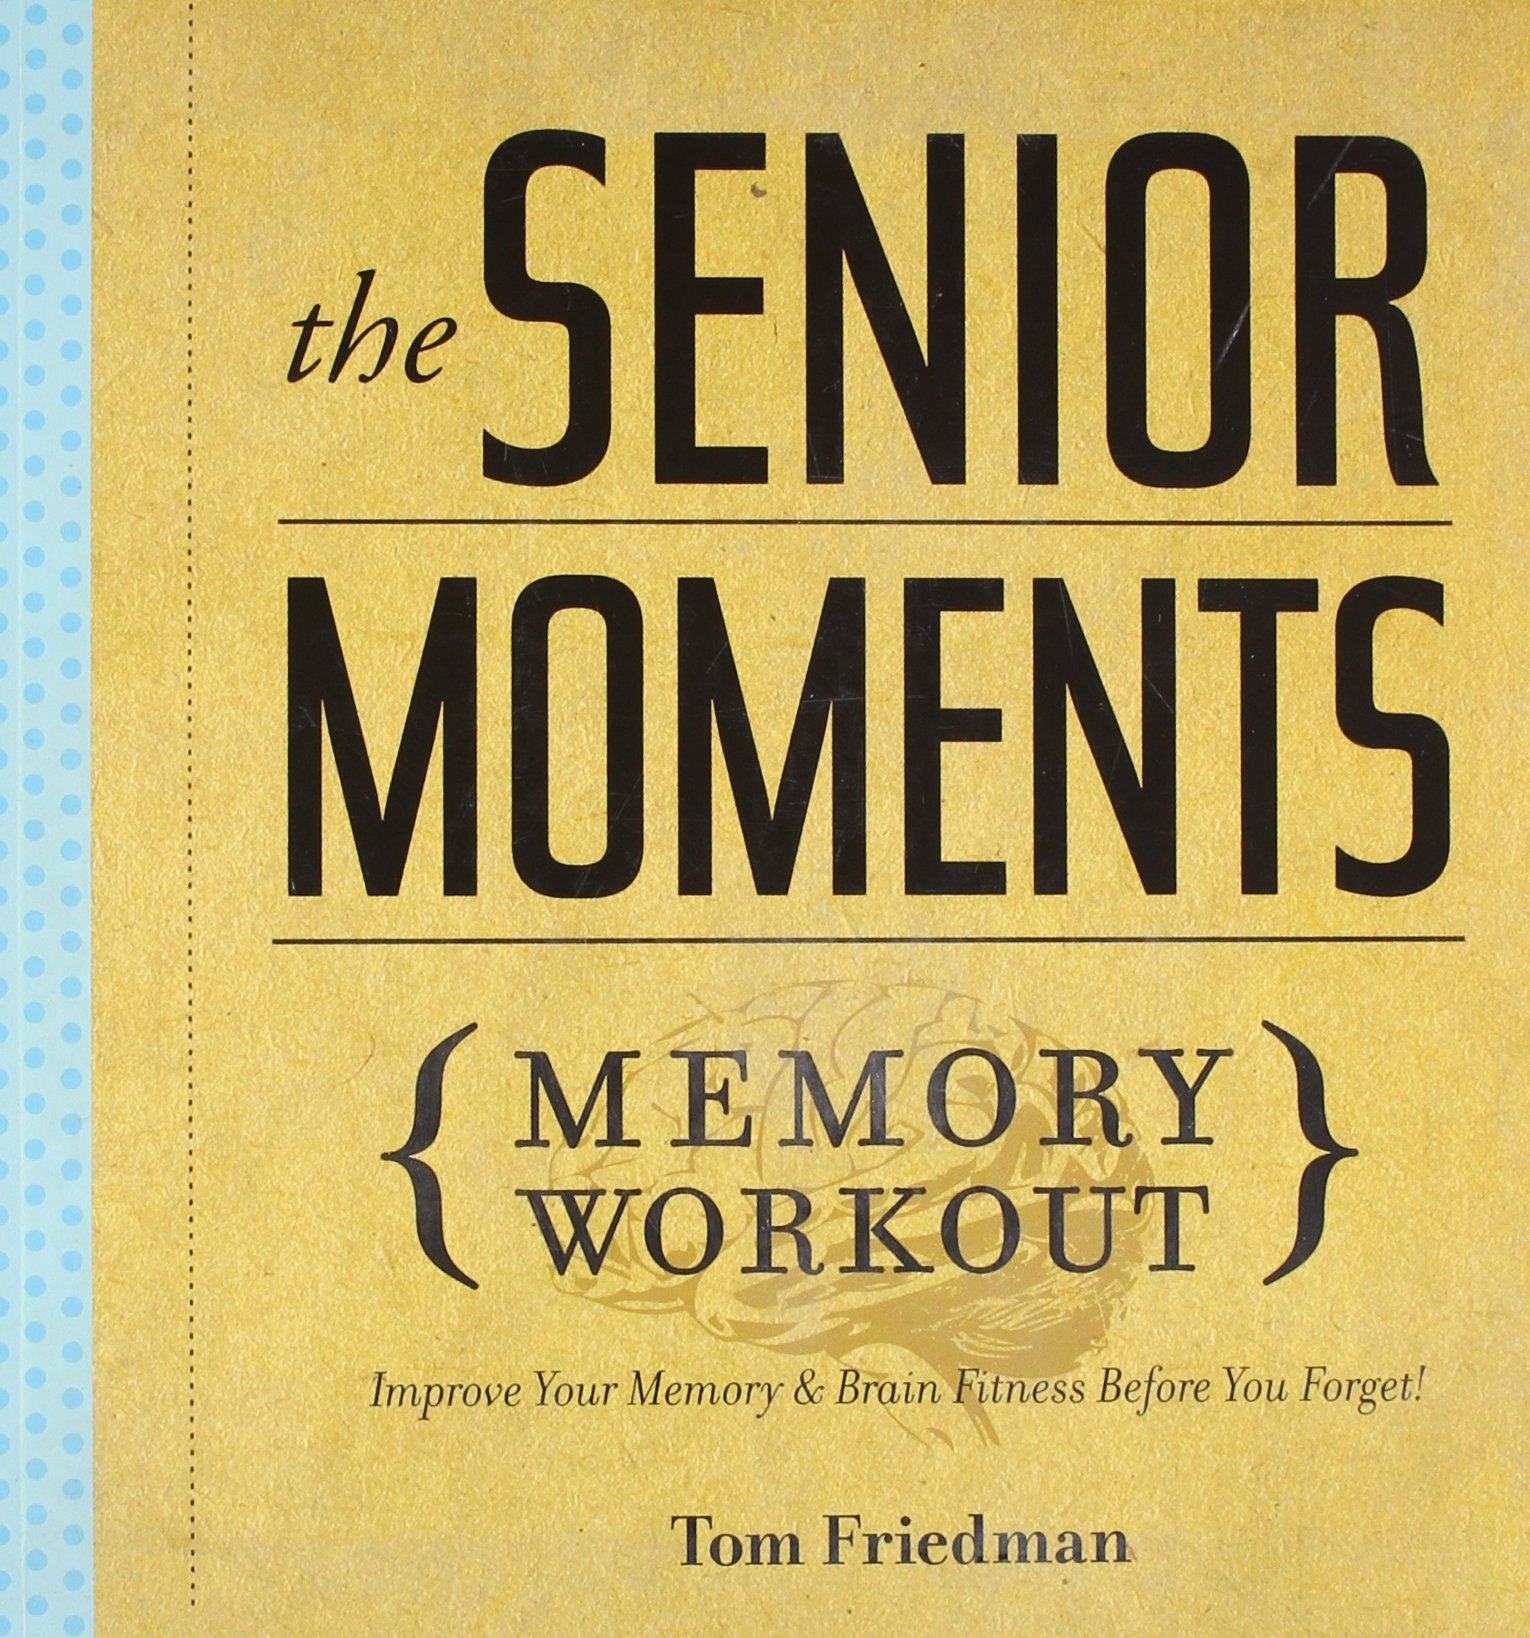 The Senior Moments Memory Workout: Improve Your Memory & Brain Fitness Before You Forget! Paperback by Tom Friedman (Author)